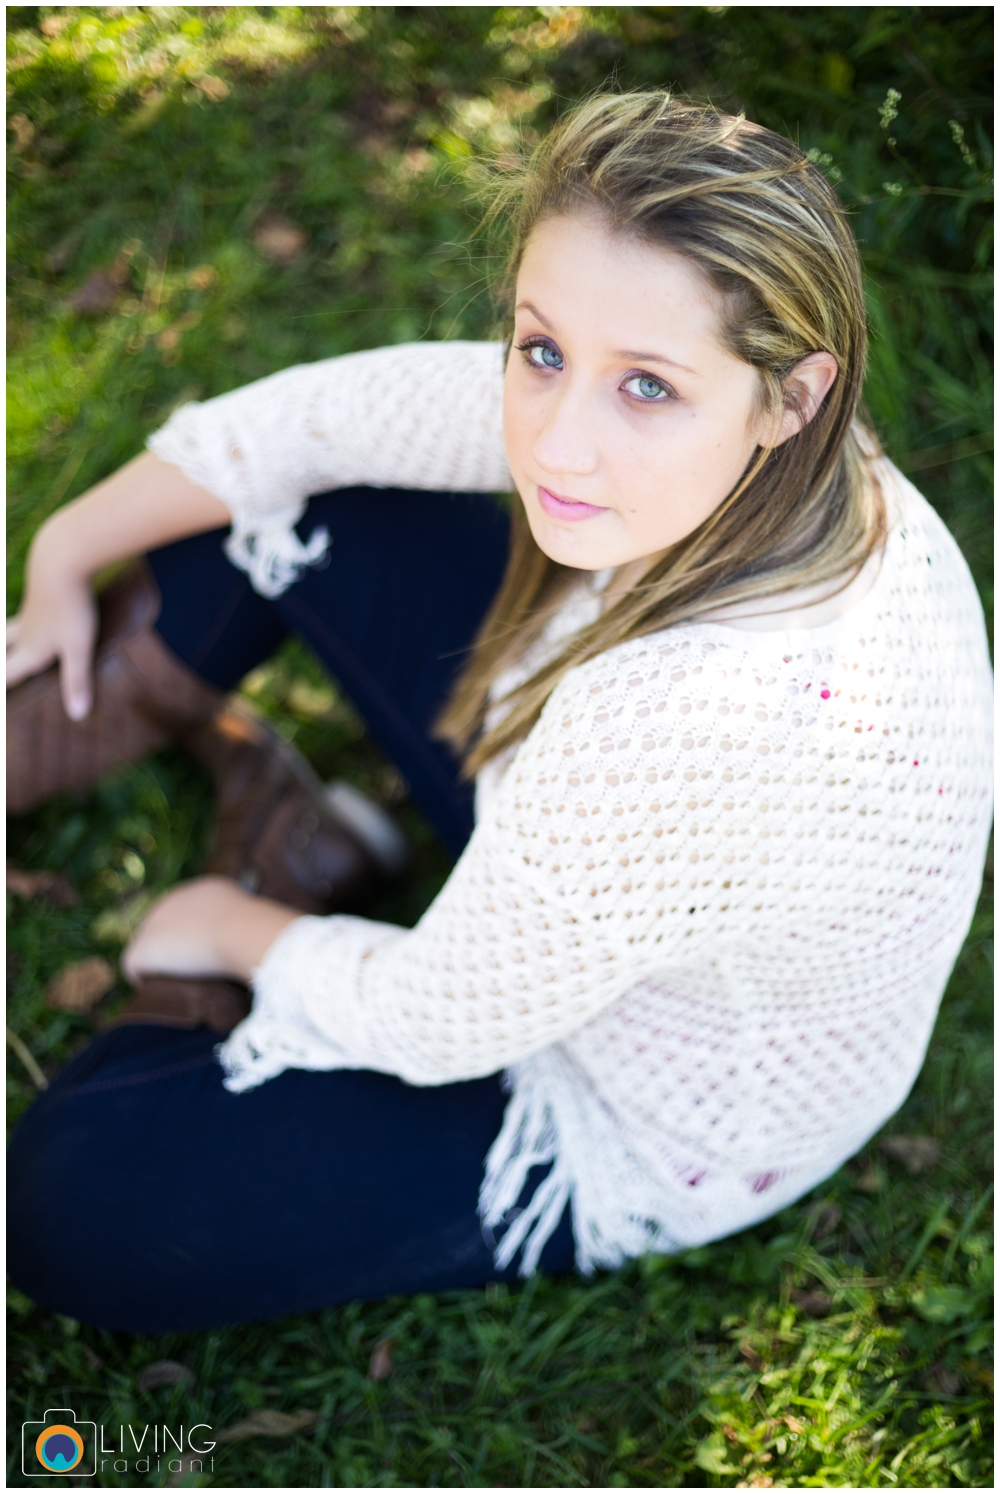 grace-nale-senior-portraits-outdoor-fall-living-radiant-photography-stomped_0011.jpg